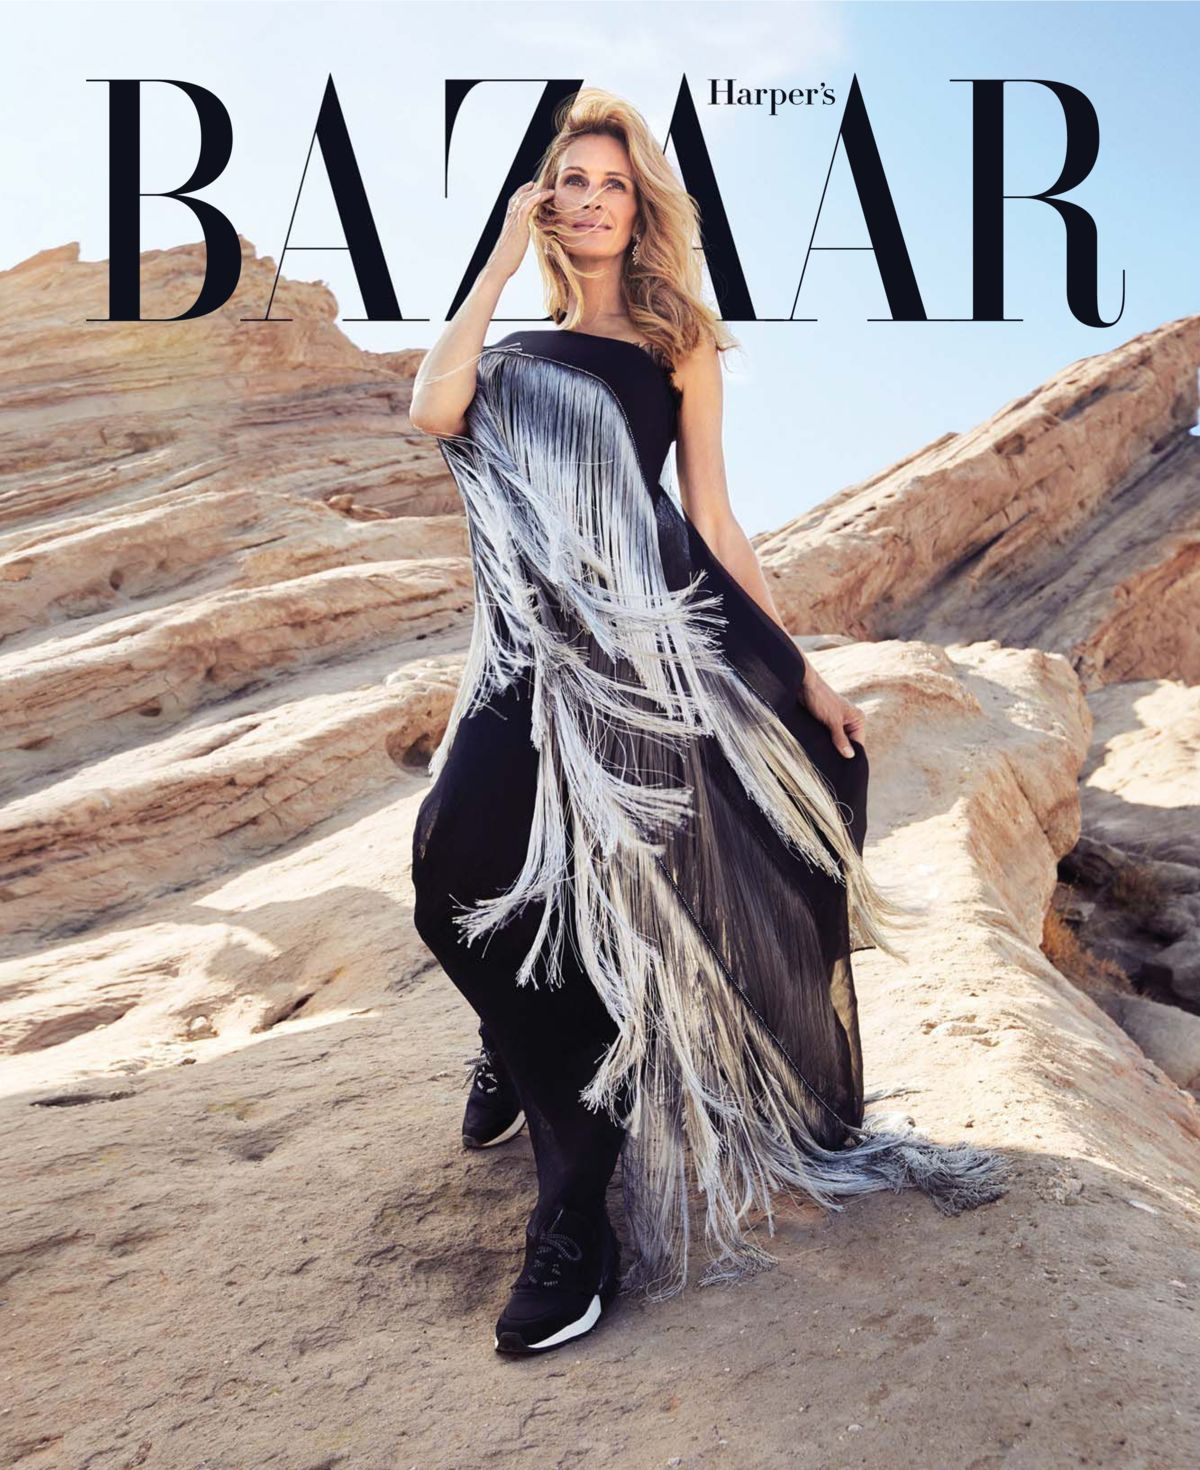 Julia Roberts in Harper's Bazaar Magazine, November 2018